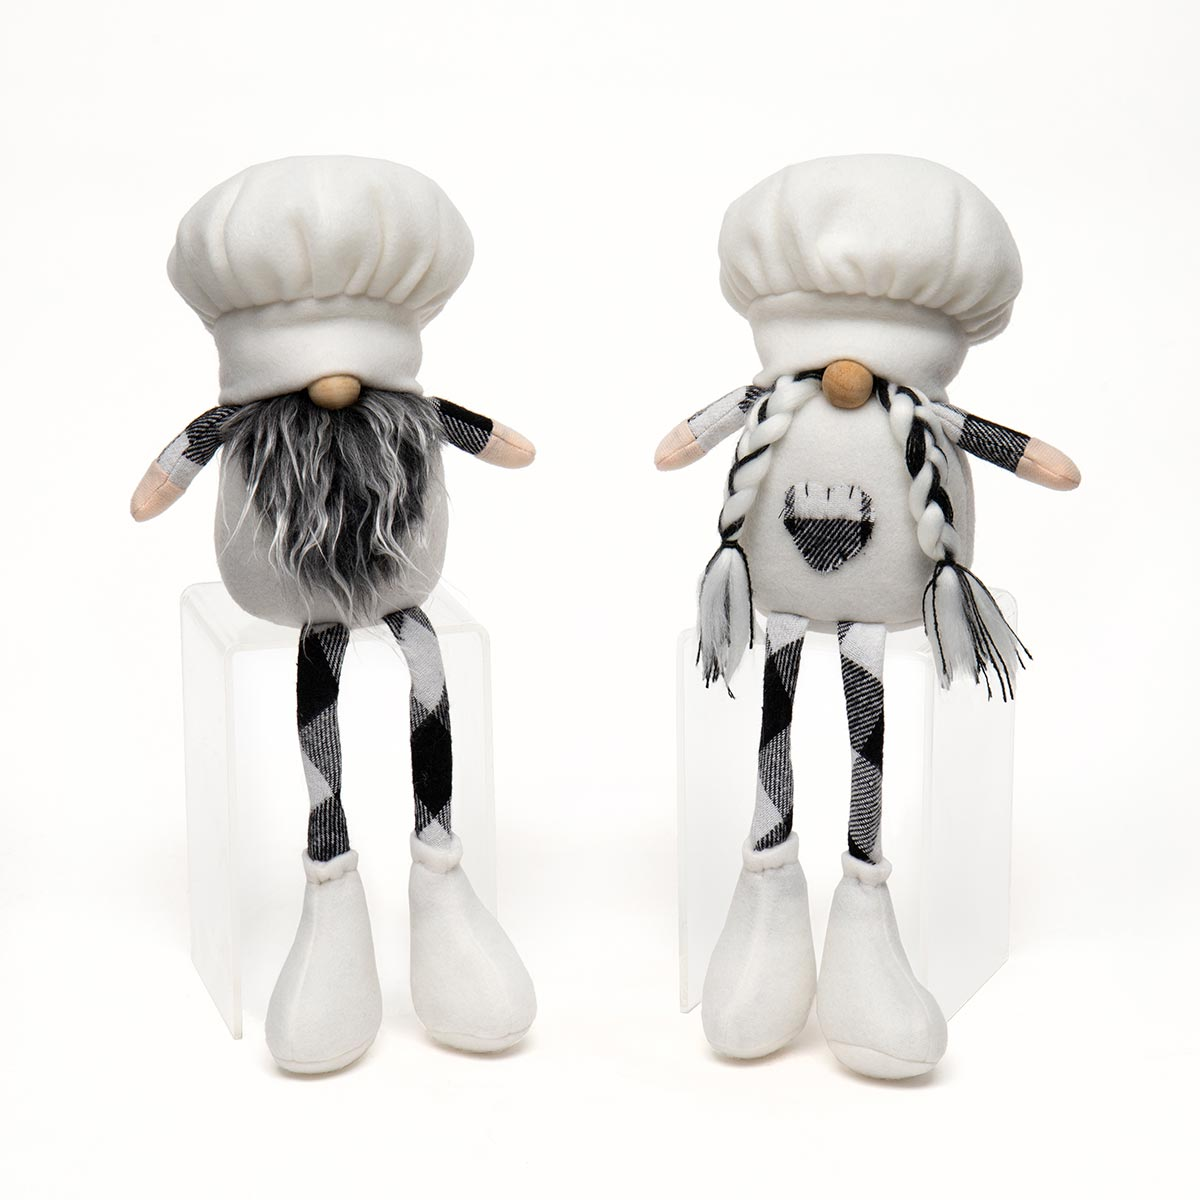 BON APPETIT COUPLE GNOME WITH WHITE CHEF HAT, WOOD NOSE,